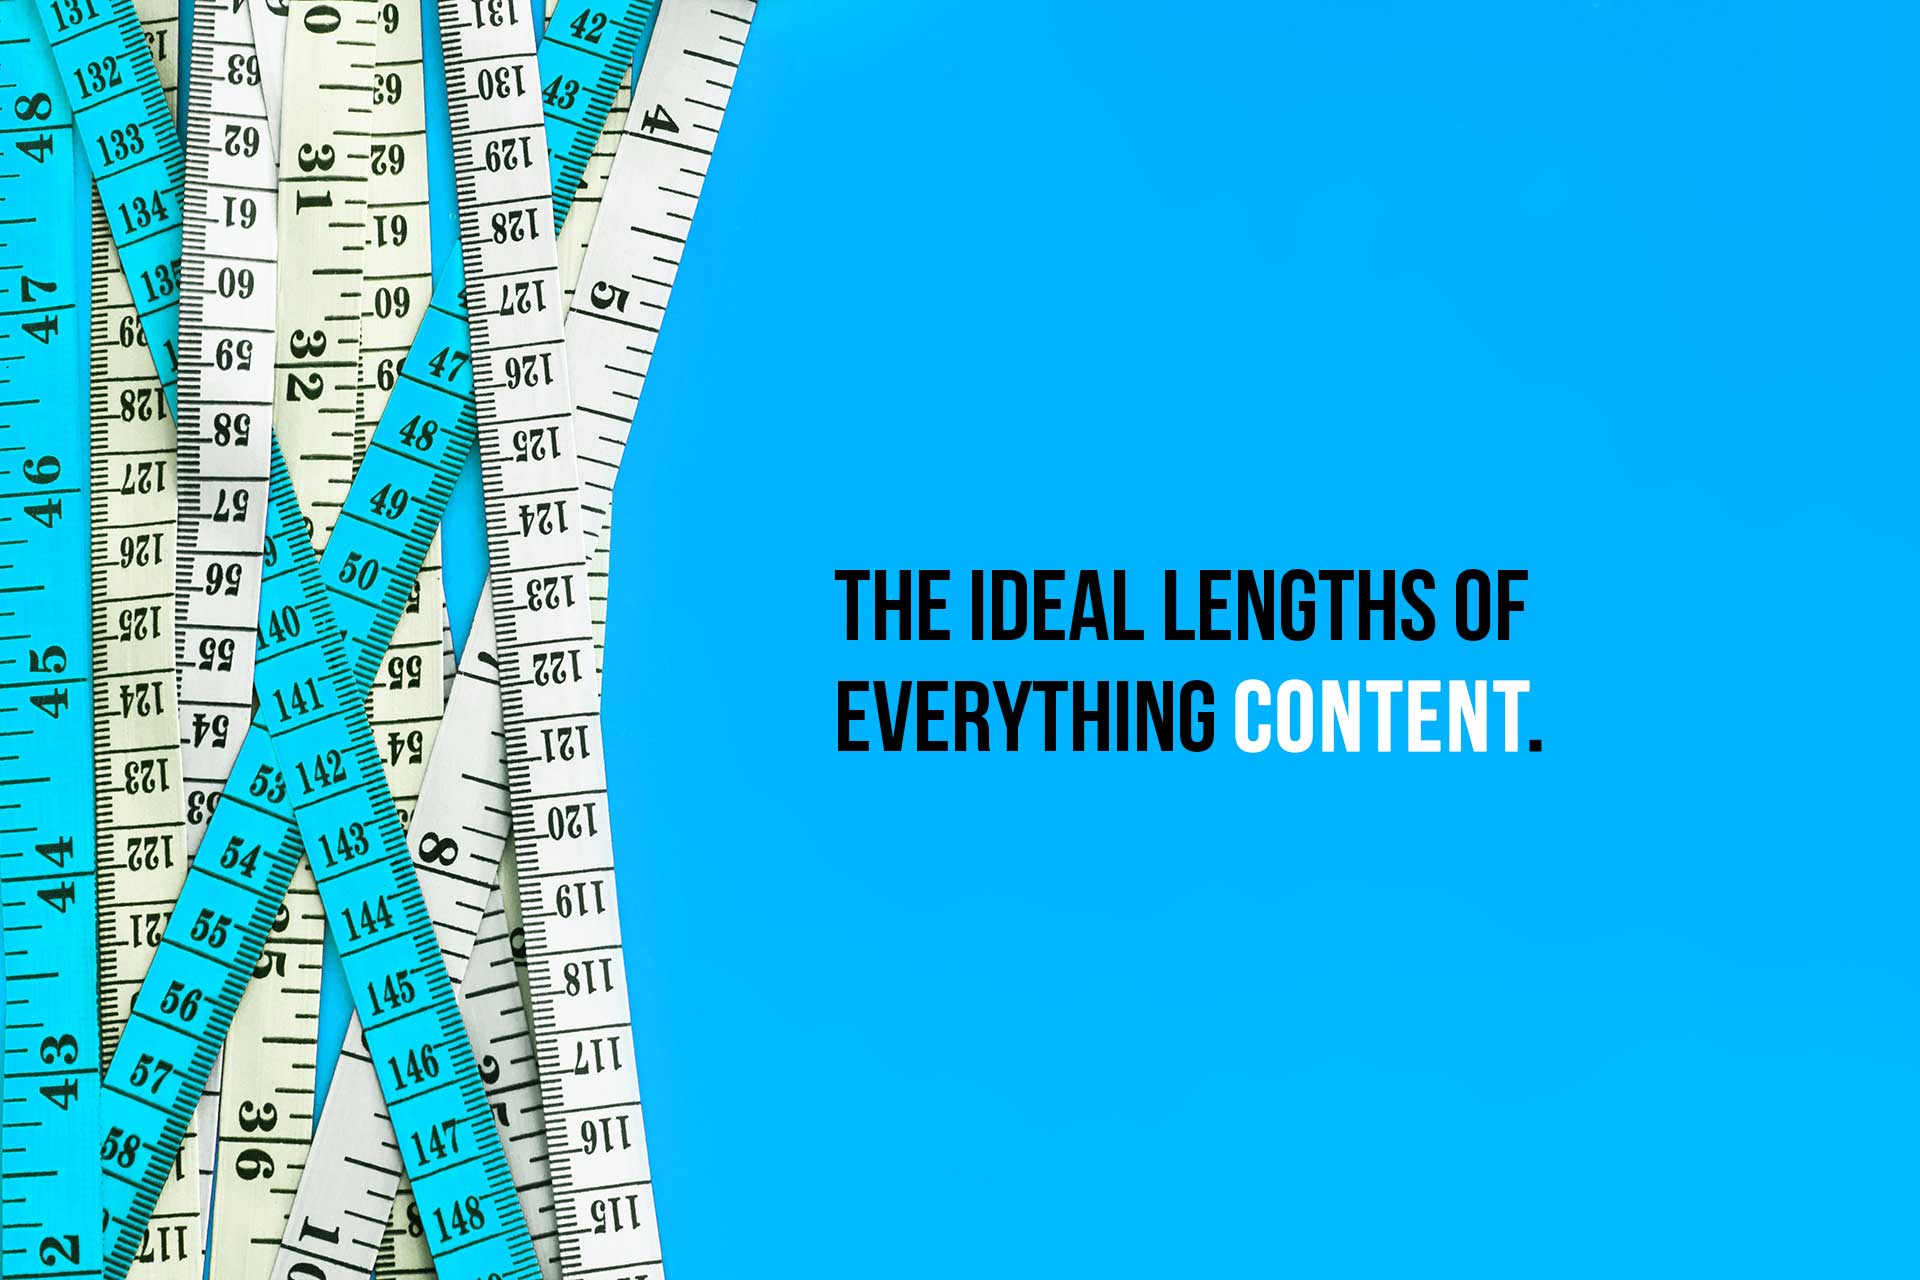 Here are the Ideal Lengths of Everything Content [Infographic]